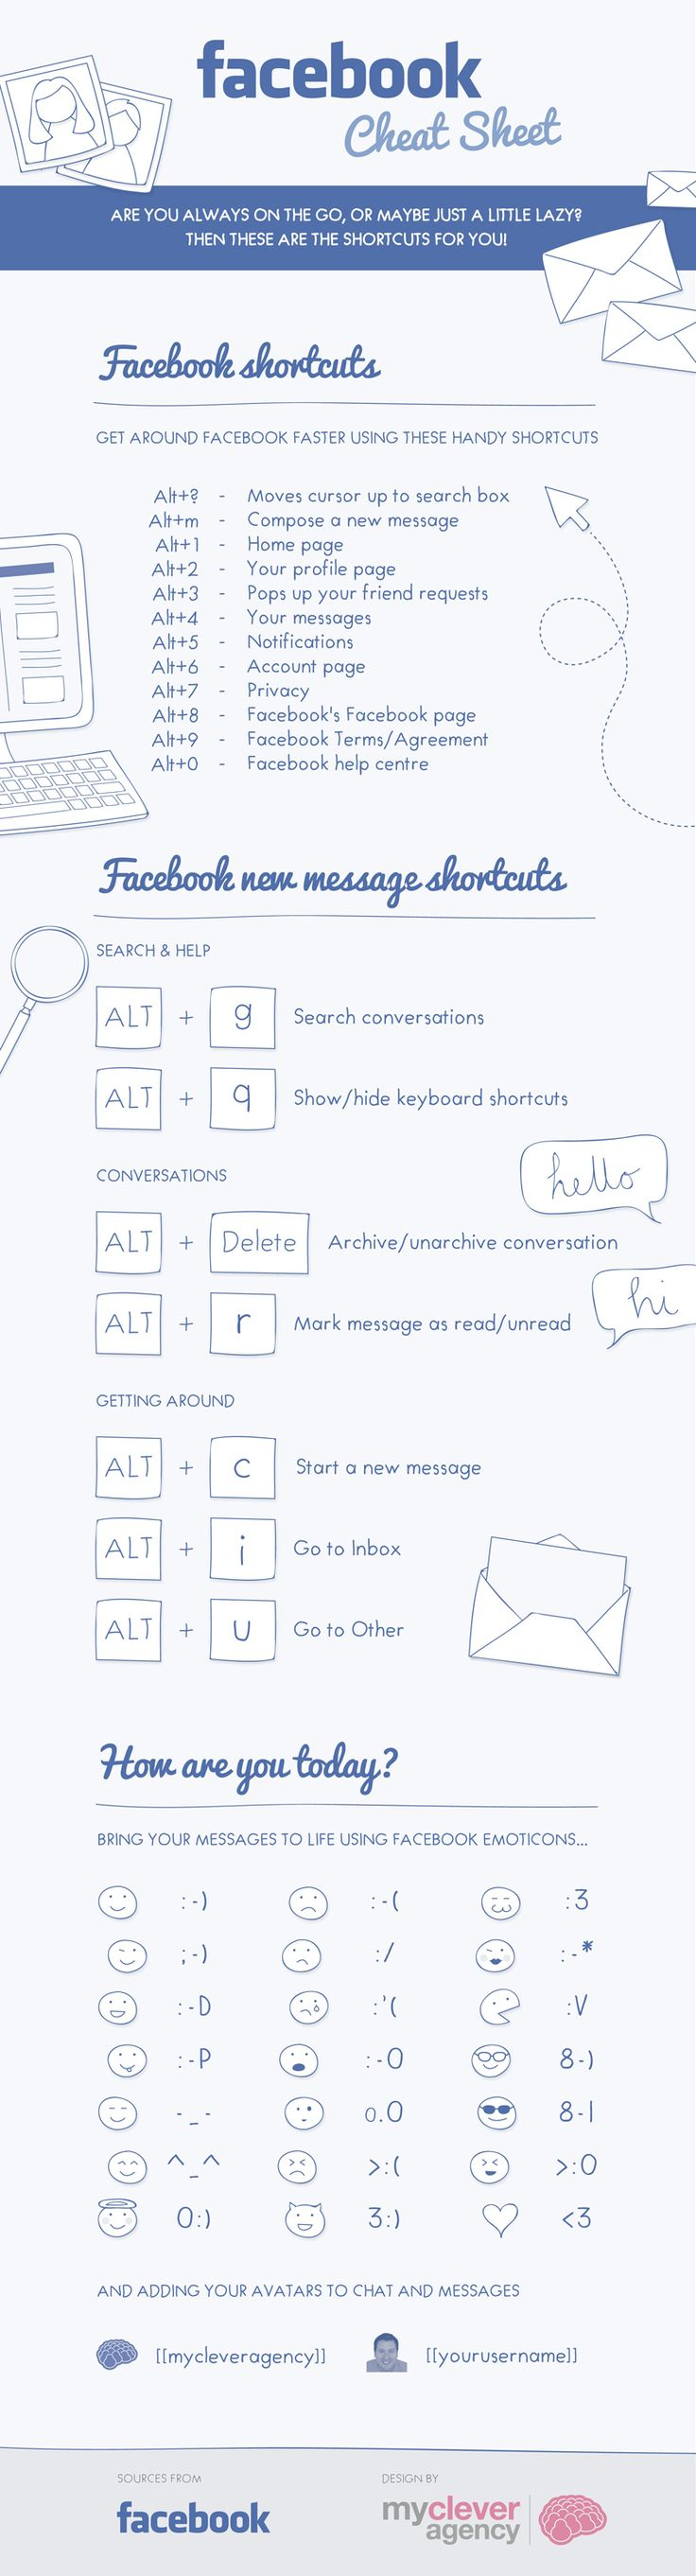 Need to save time (while wasting some) on Facebook? Here's a handy infographic on all the keyboard shortcuts to help you navigate your way around the number one social network.